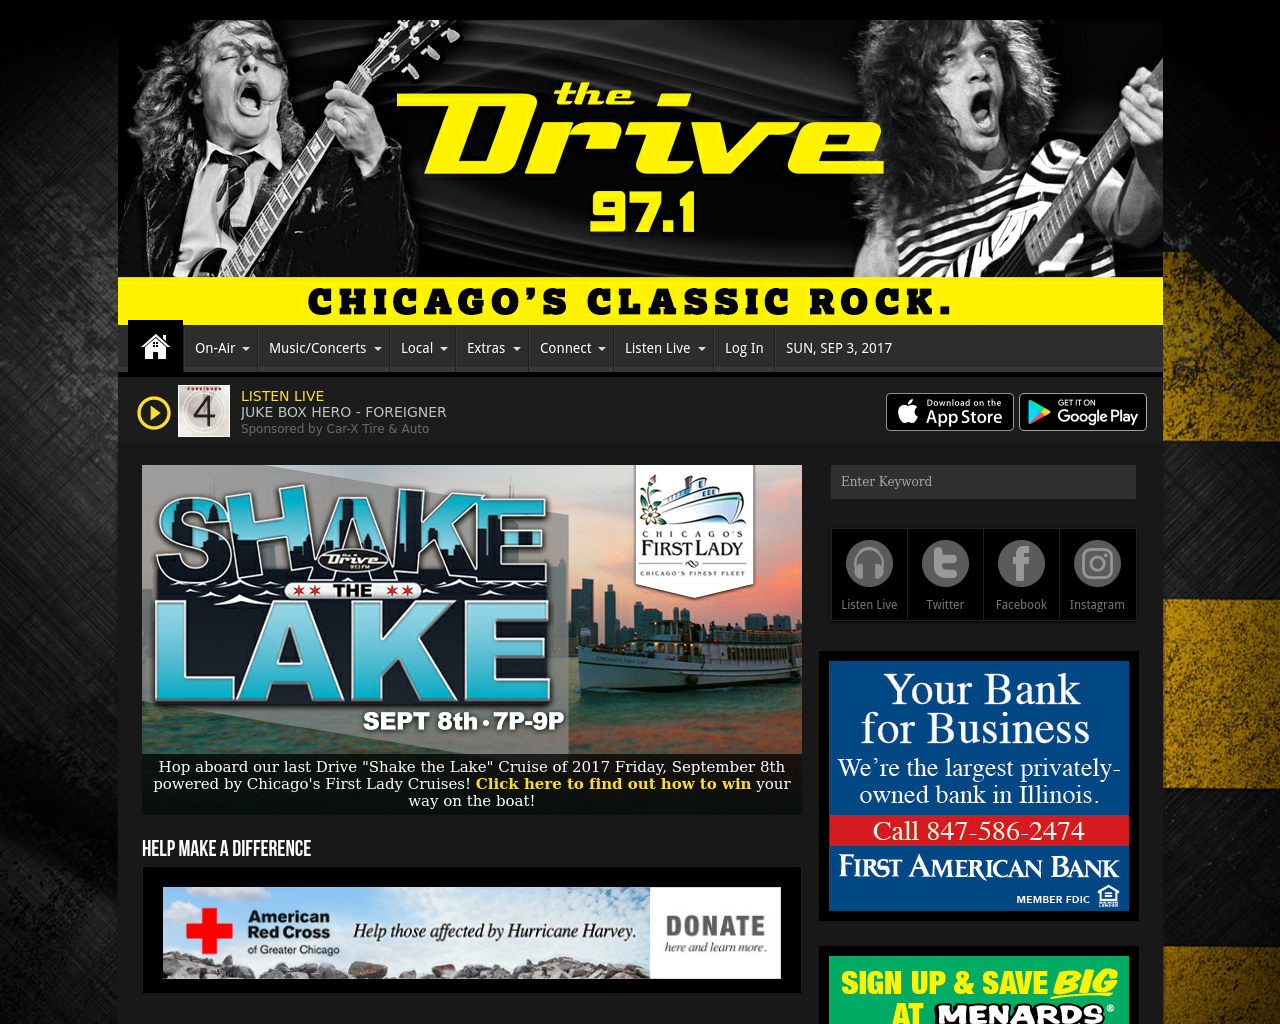 The-Drive-97.1-Advertising-Reviews-Pricing